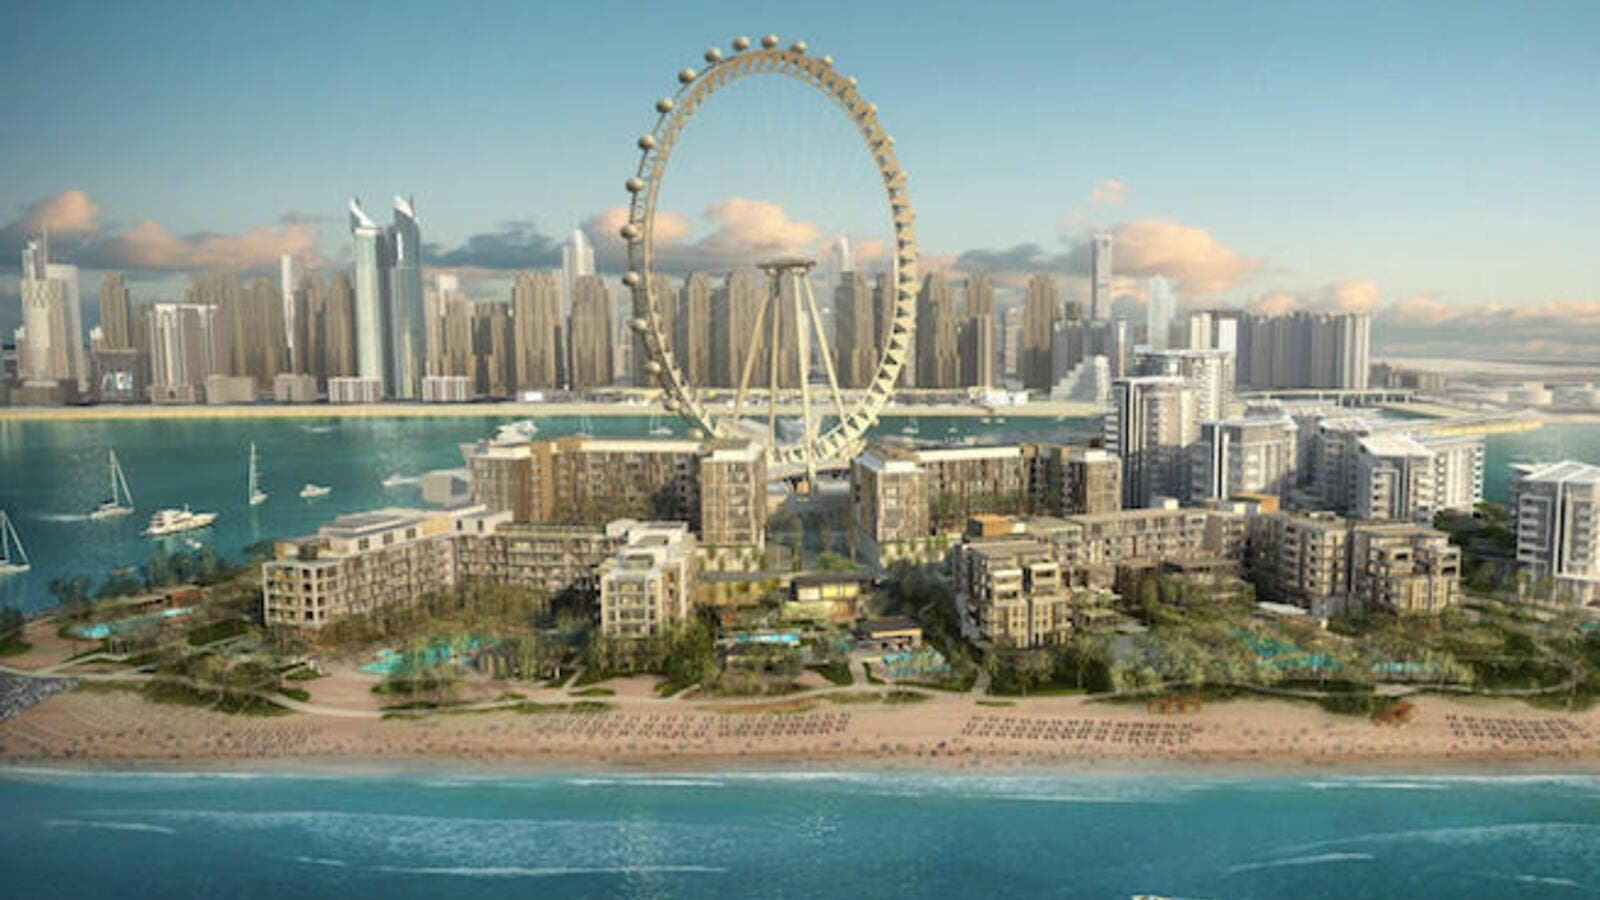 According to a press release from earlier this year, the Caesars Palace Bluewaters Dubai will be the world's second Caesars Palace. (Caesars Entertainment)